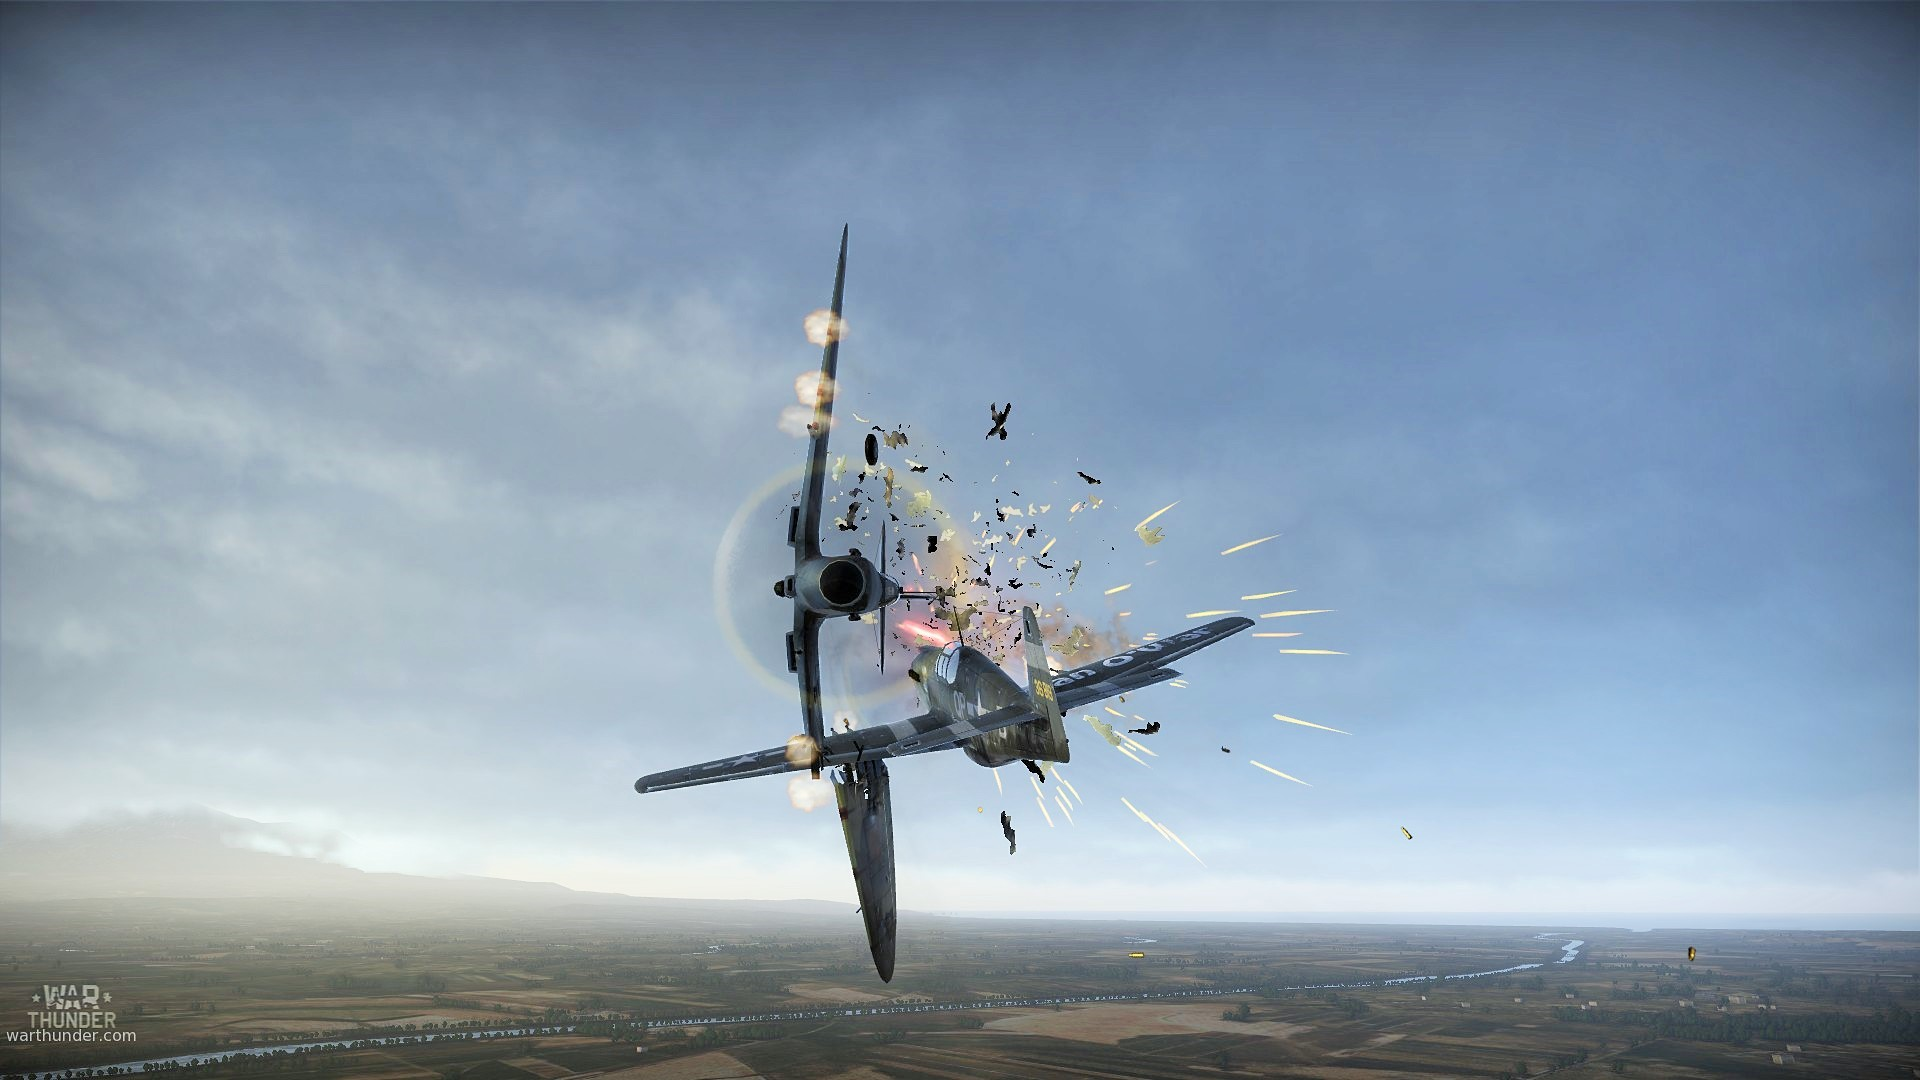 War thunder close call (9)